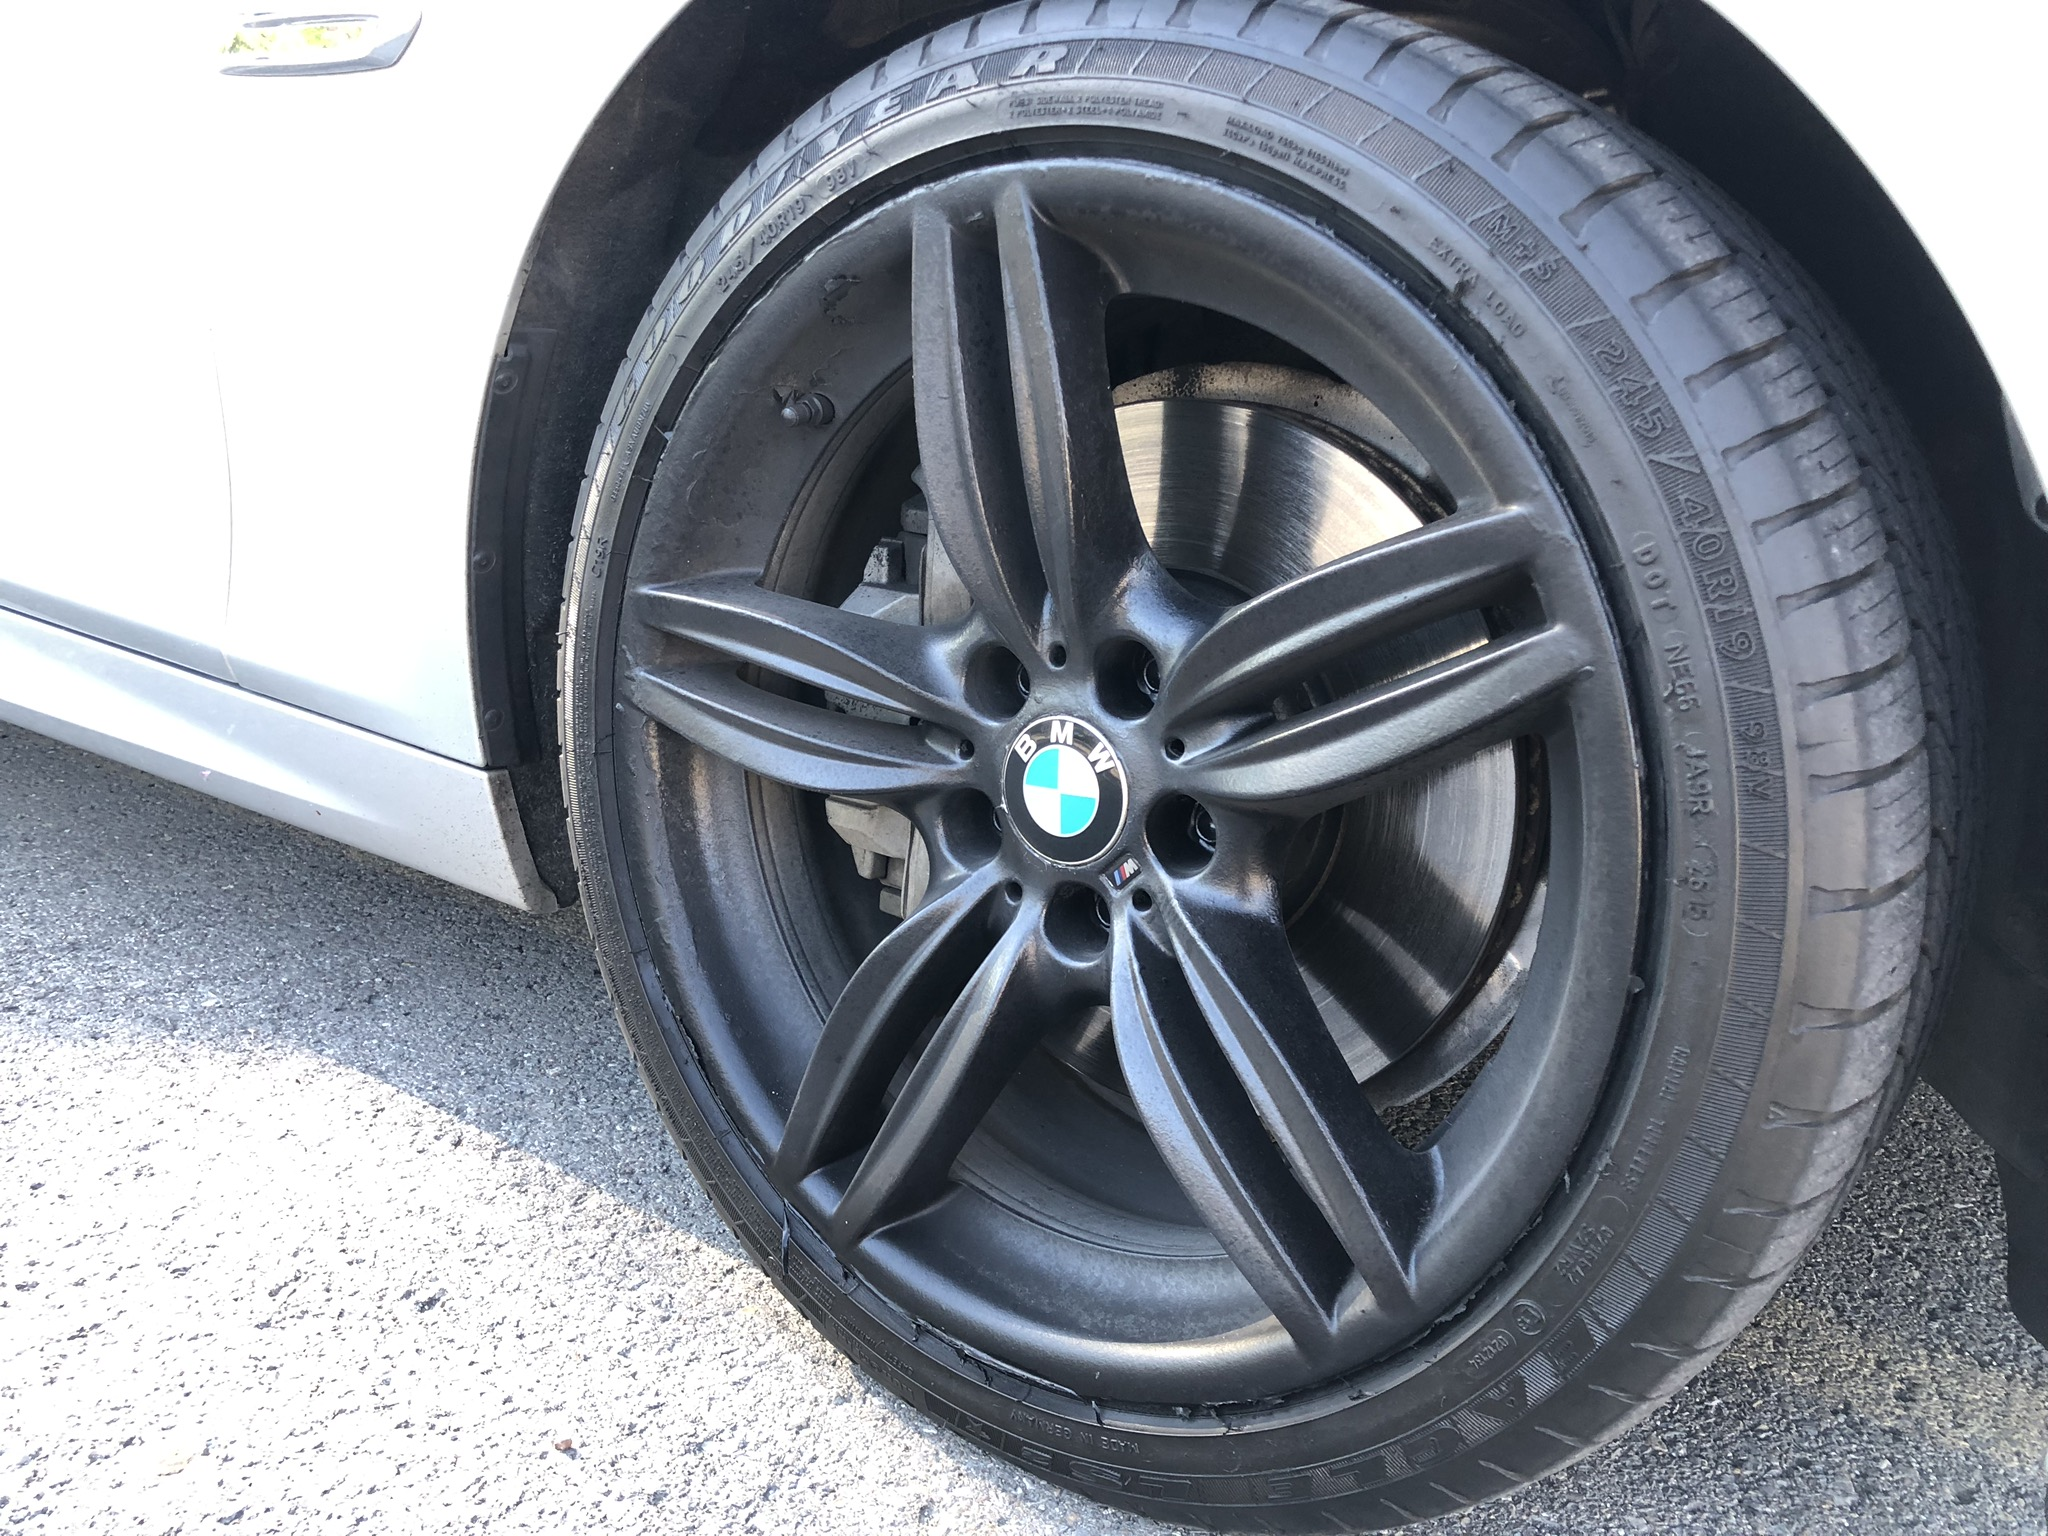 BMW 5 series after plastidip removal & gloss black paint